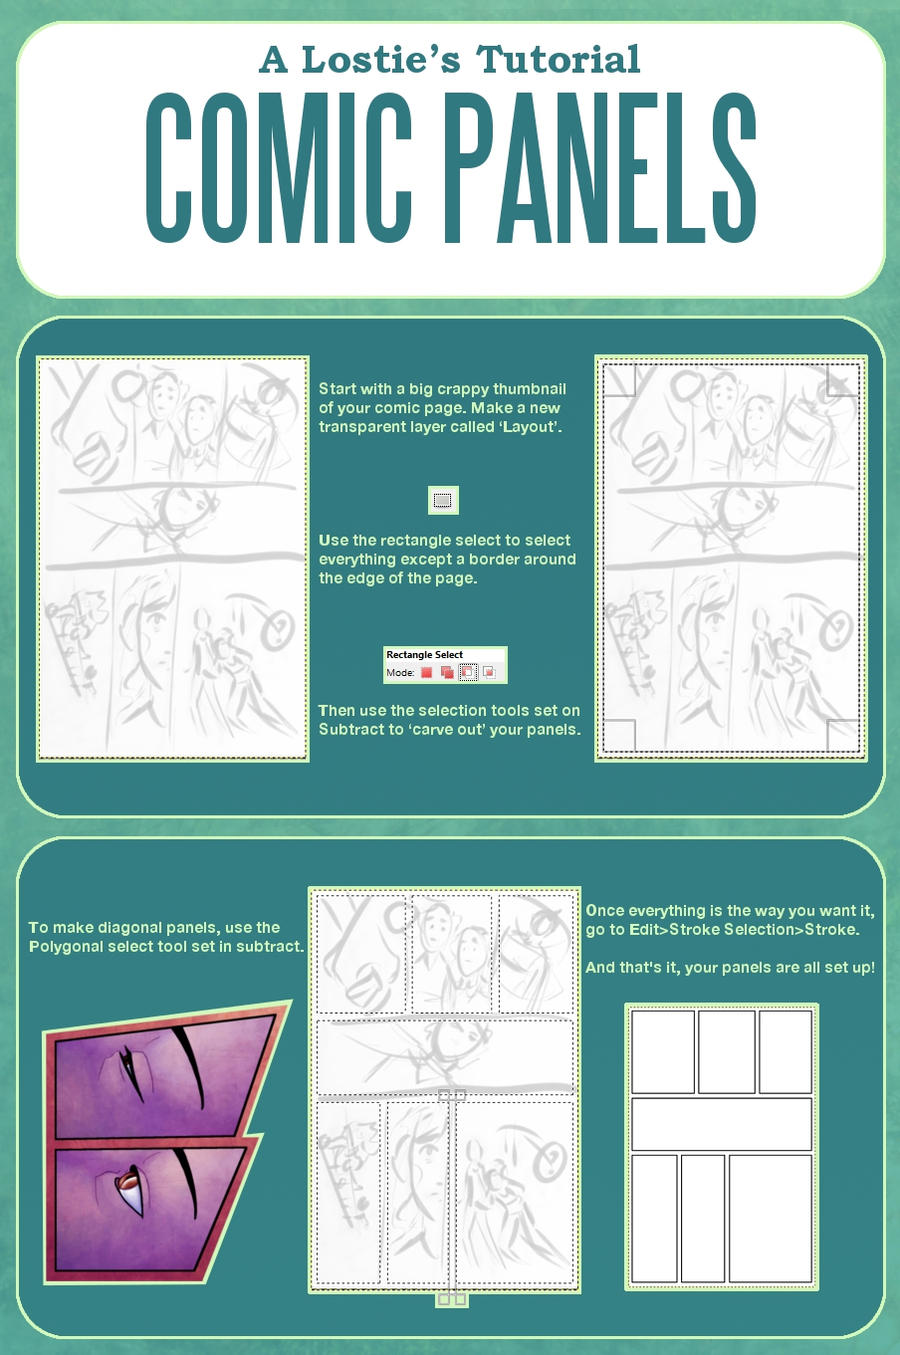 A Lostie's Tutorial - Comic Panels and Layouts by lostie815